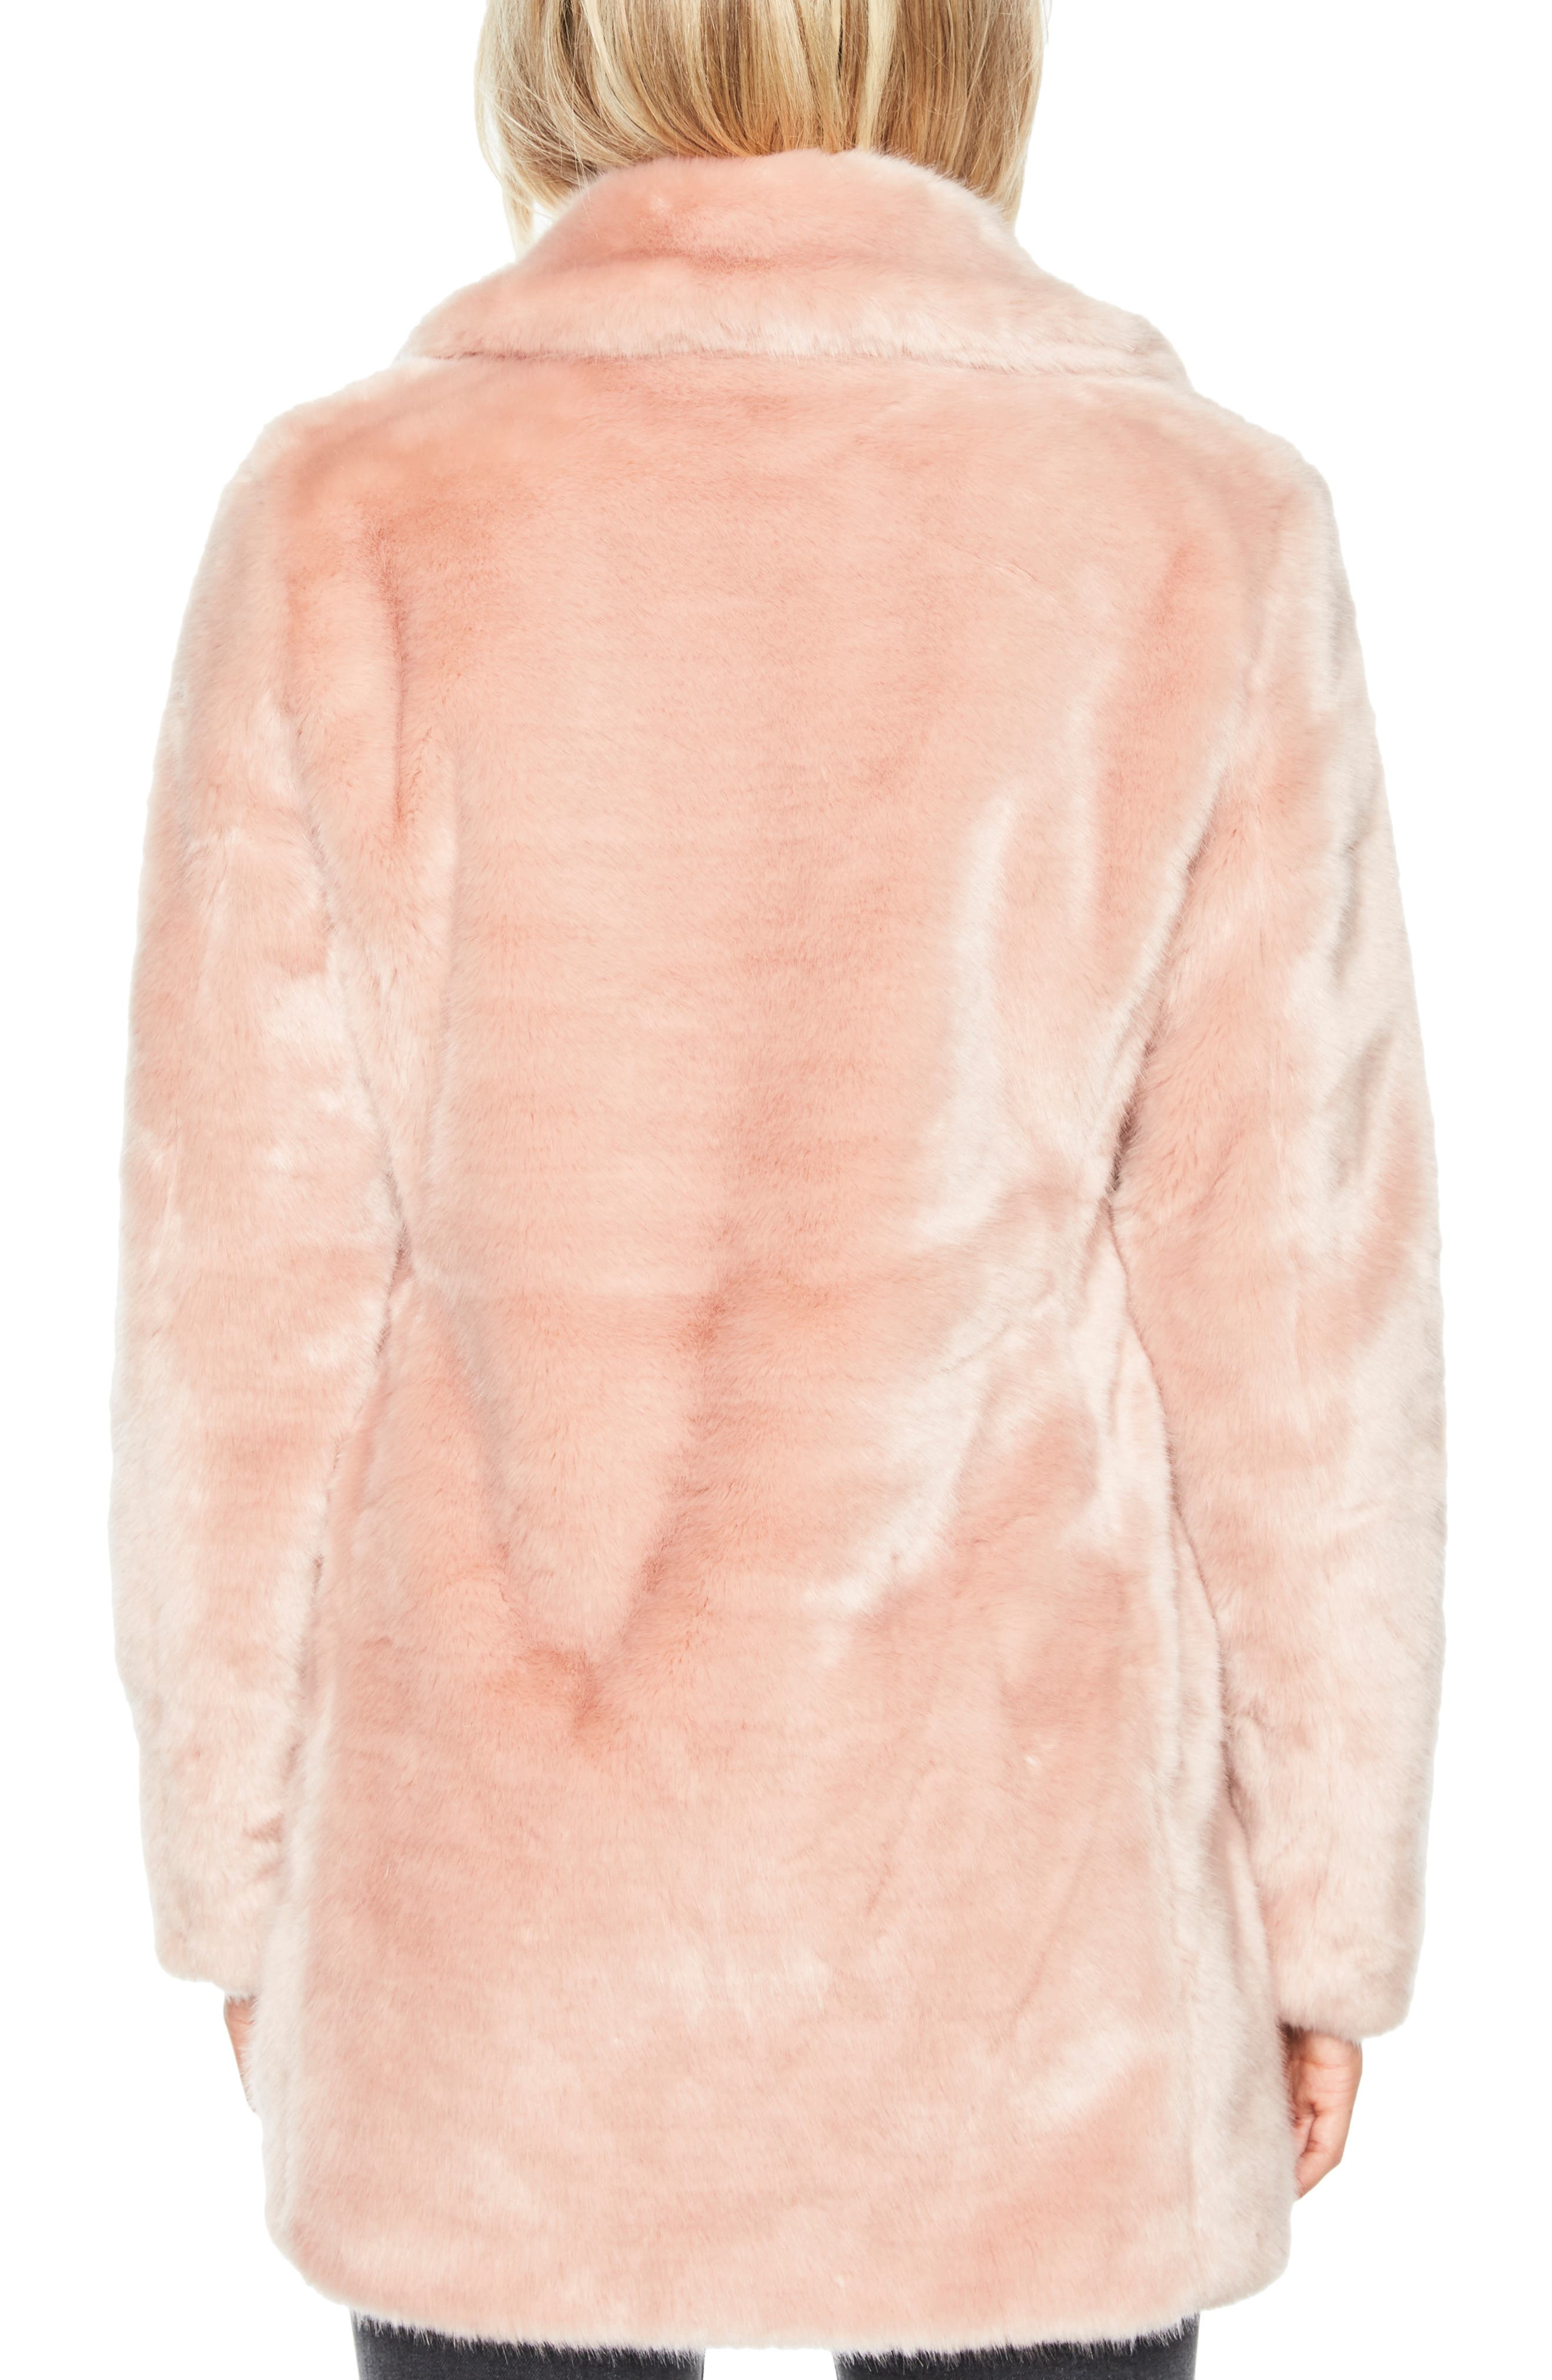 Faux Fur Coat,                             Alternate thumbnail 2, color,                             BLUSH PINK